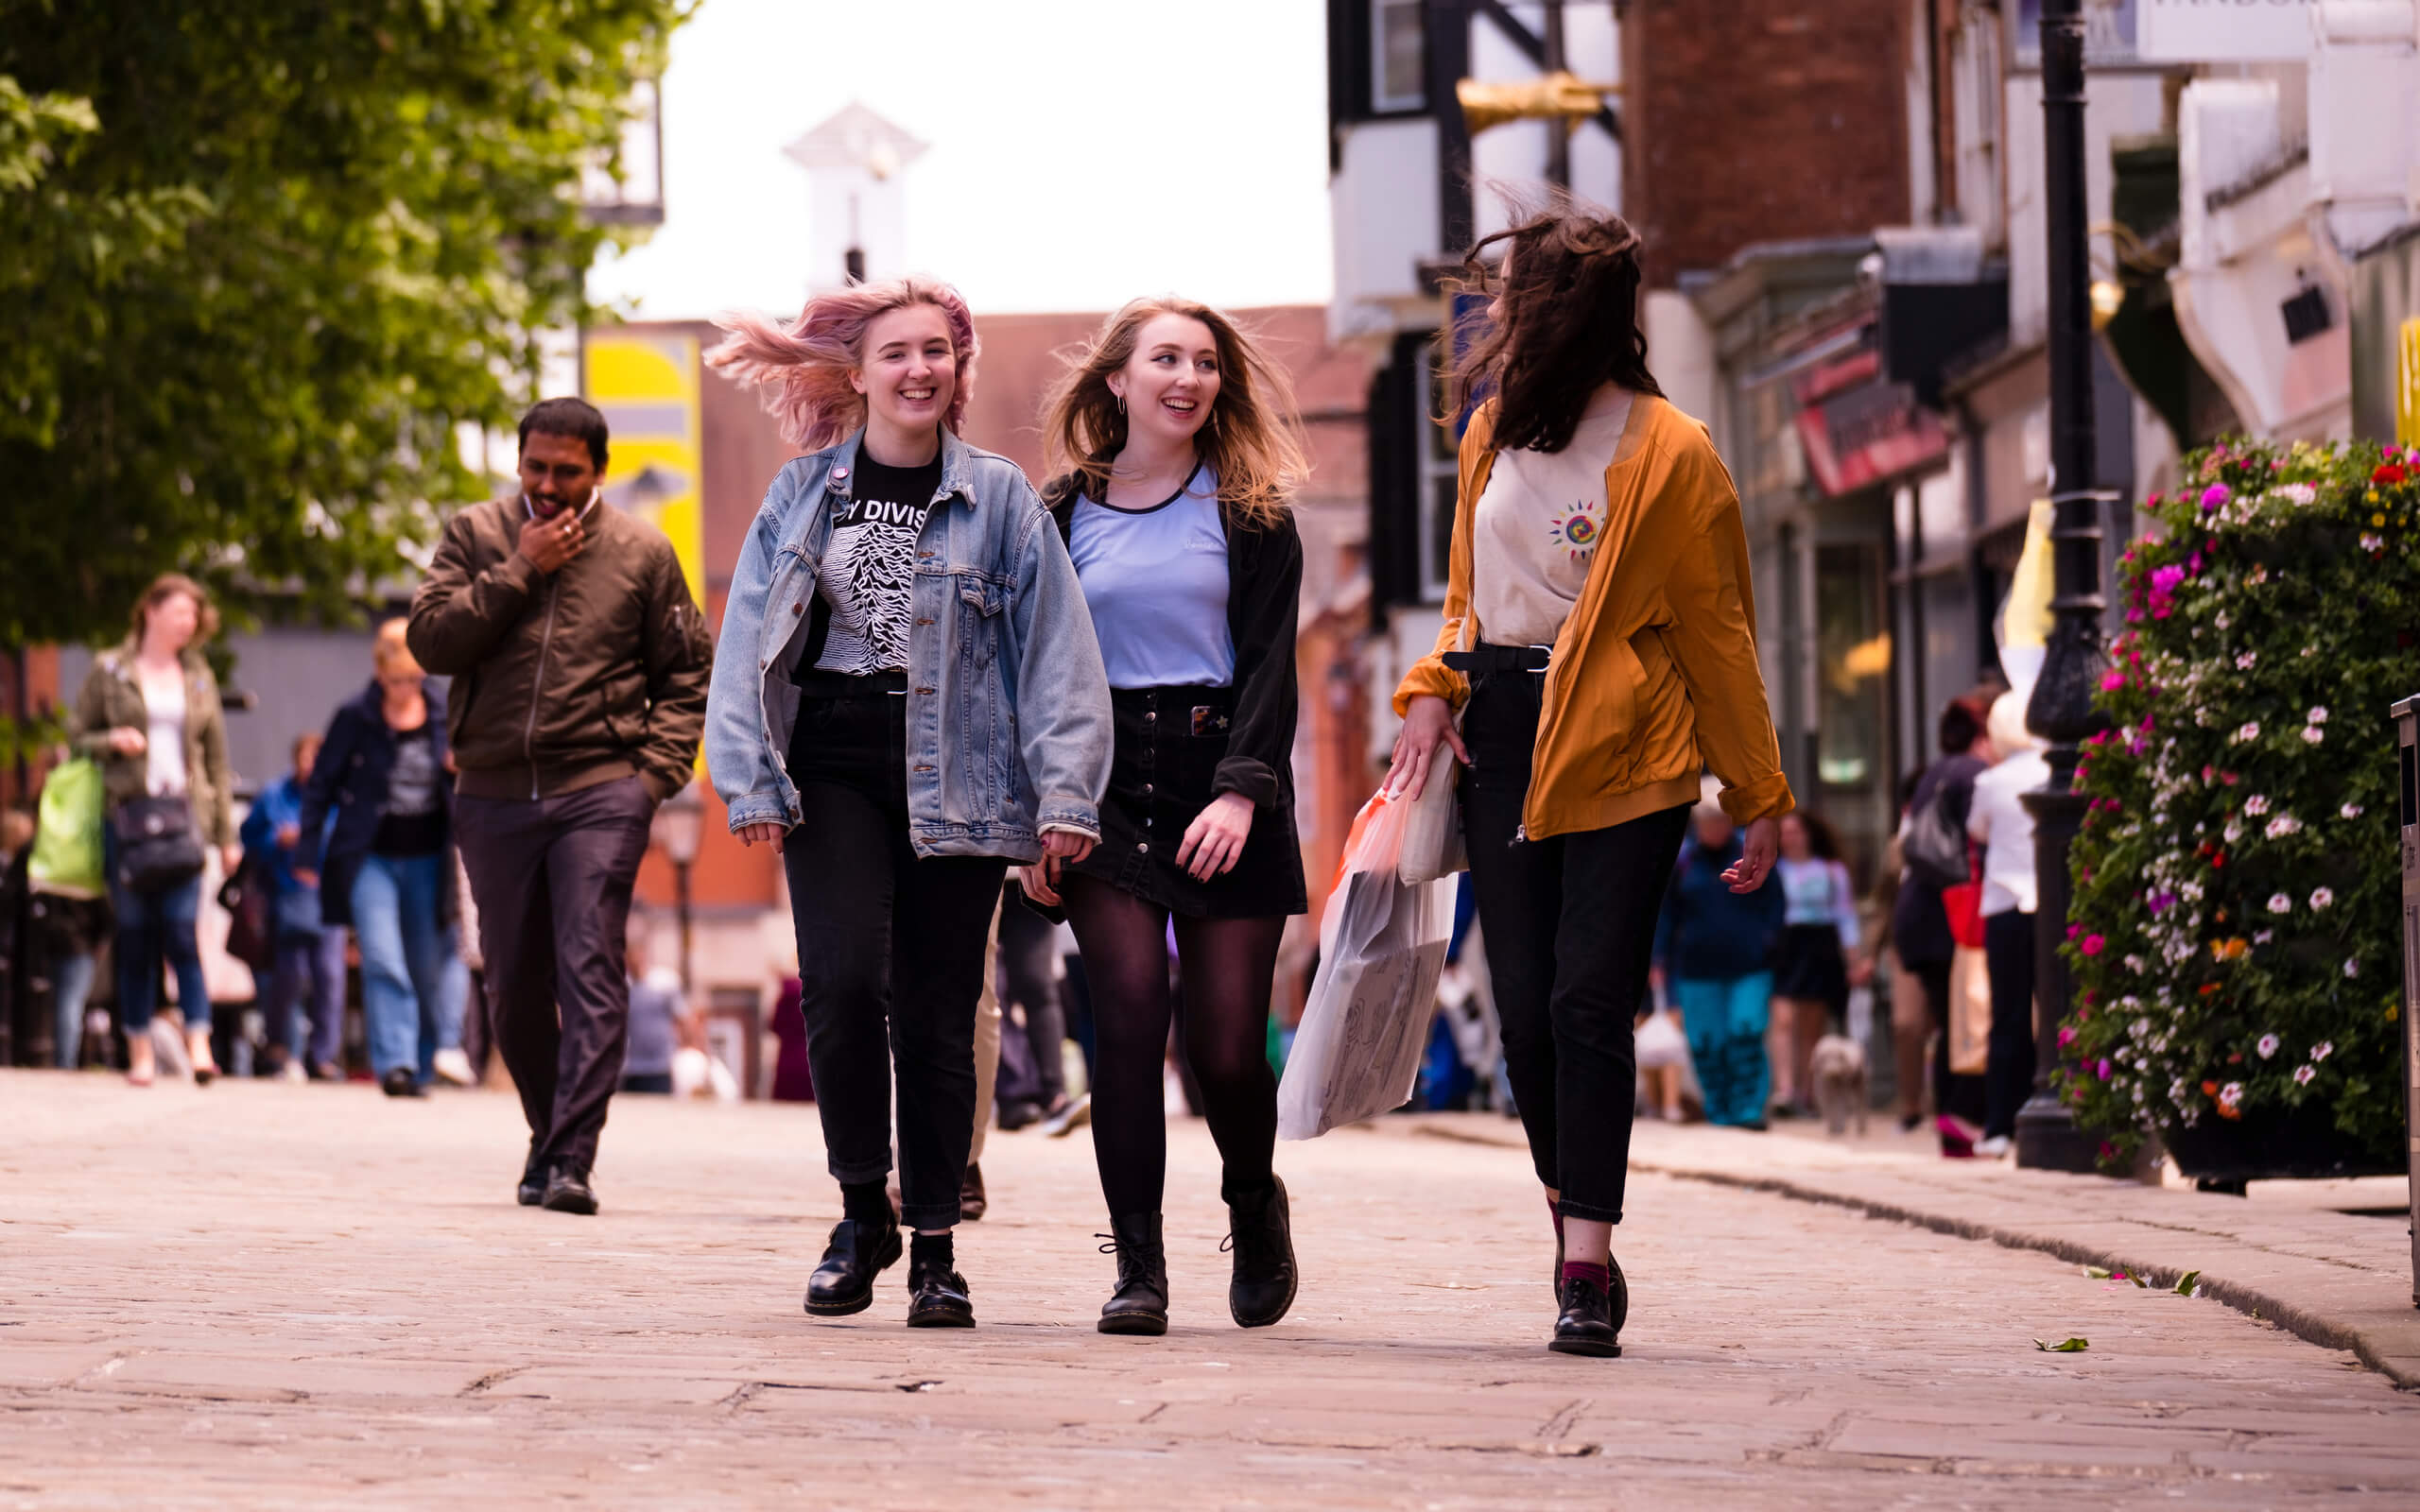 Three students walking through Chesterfield town centre.